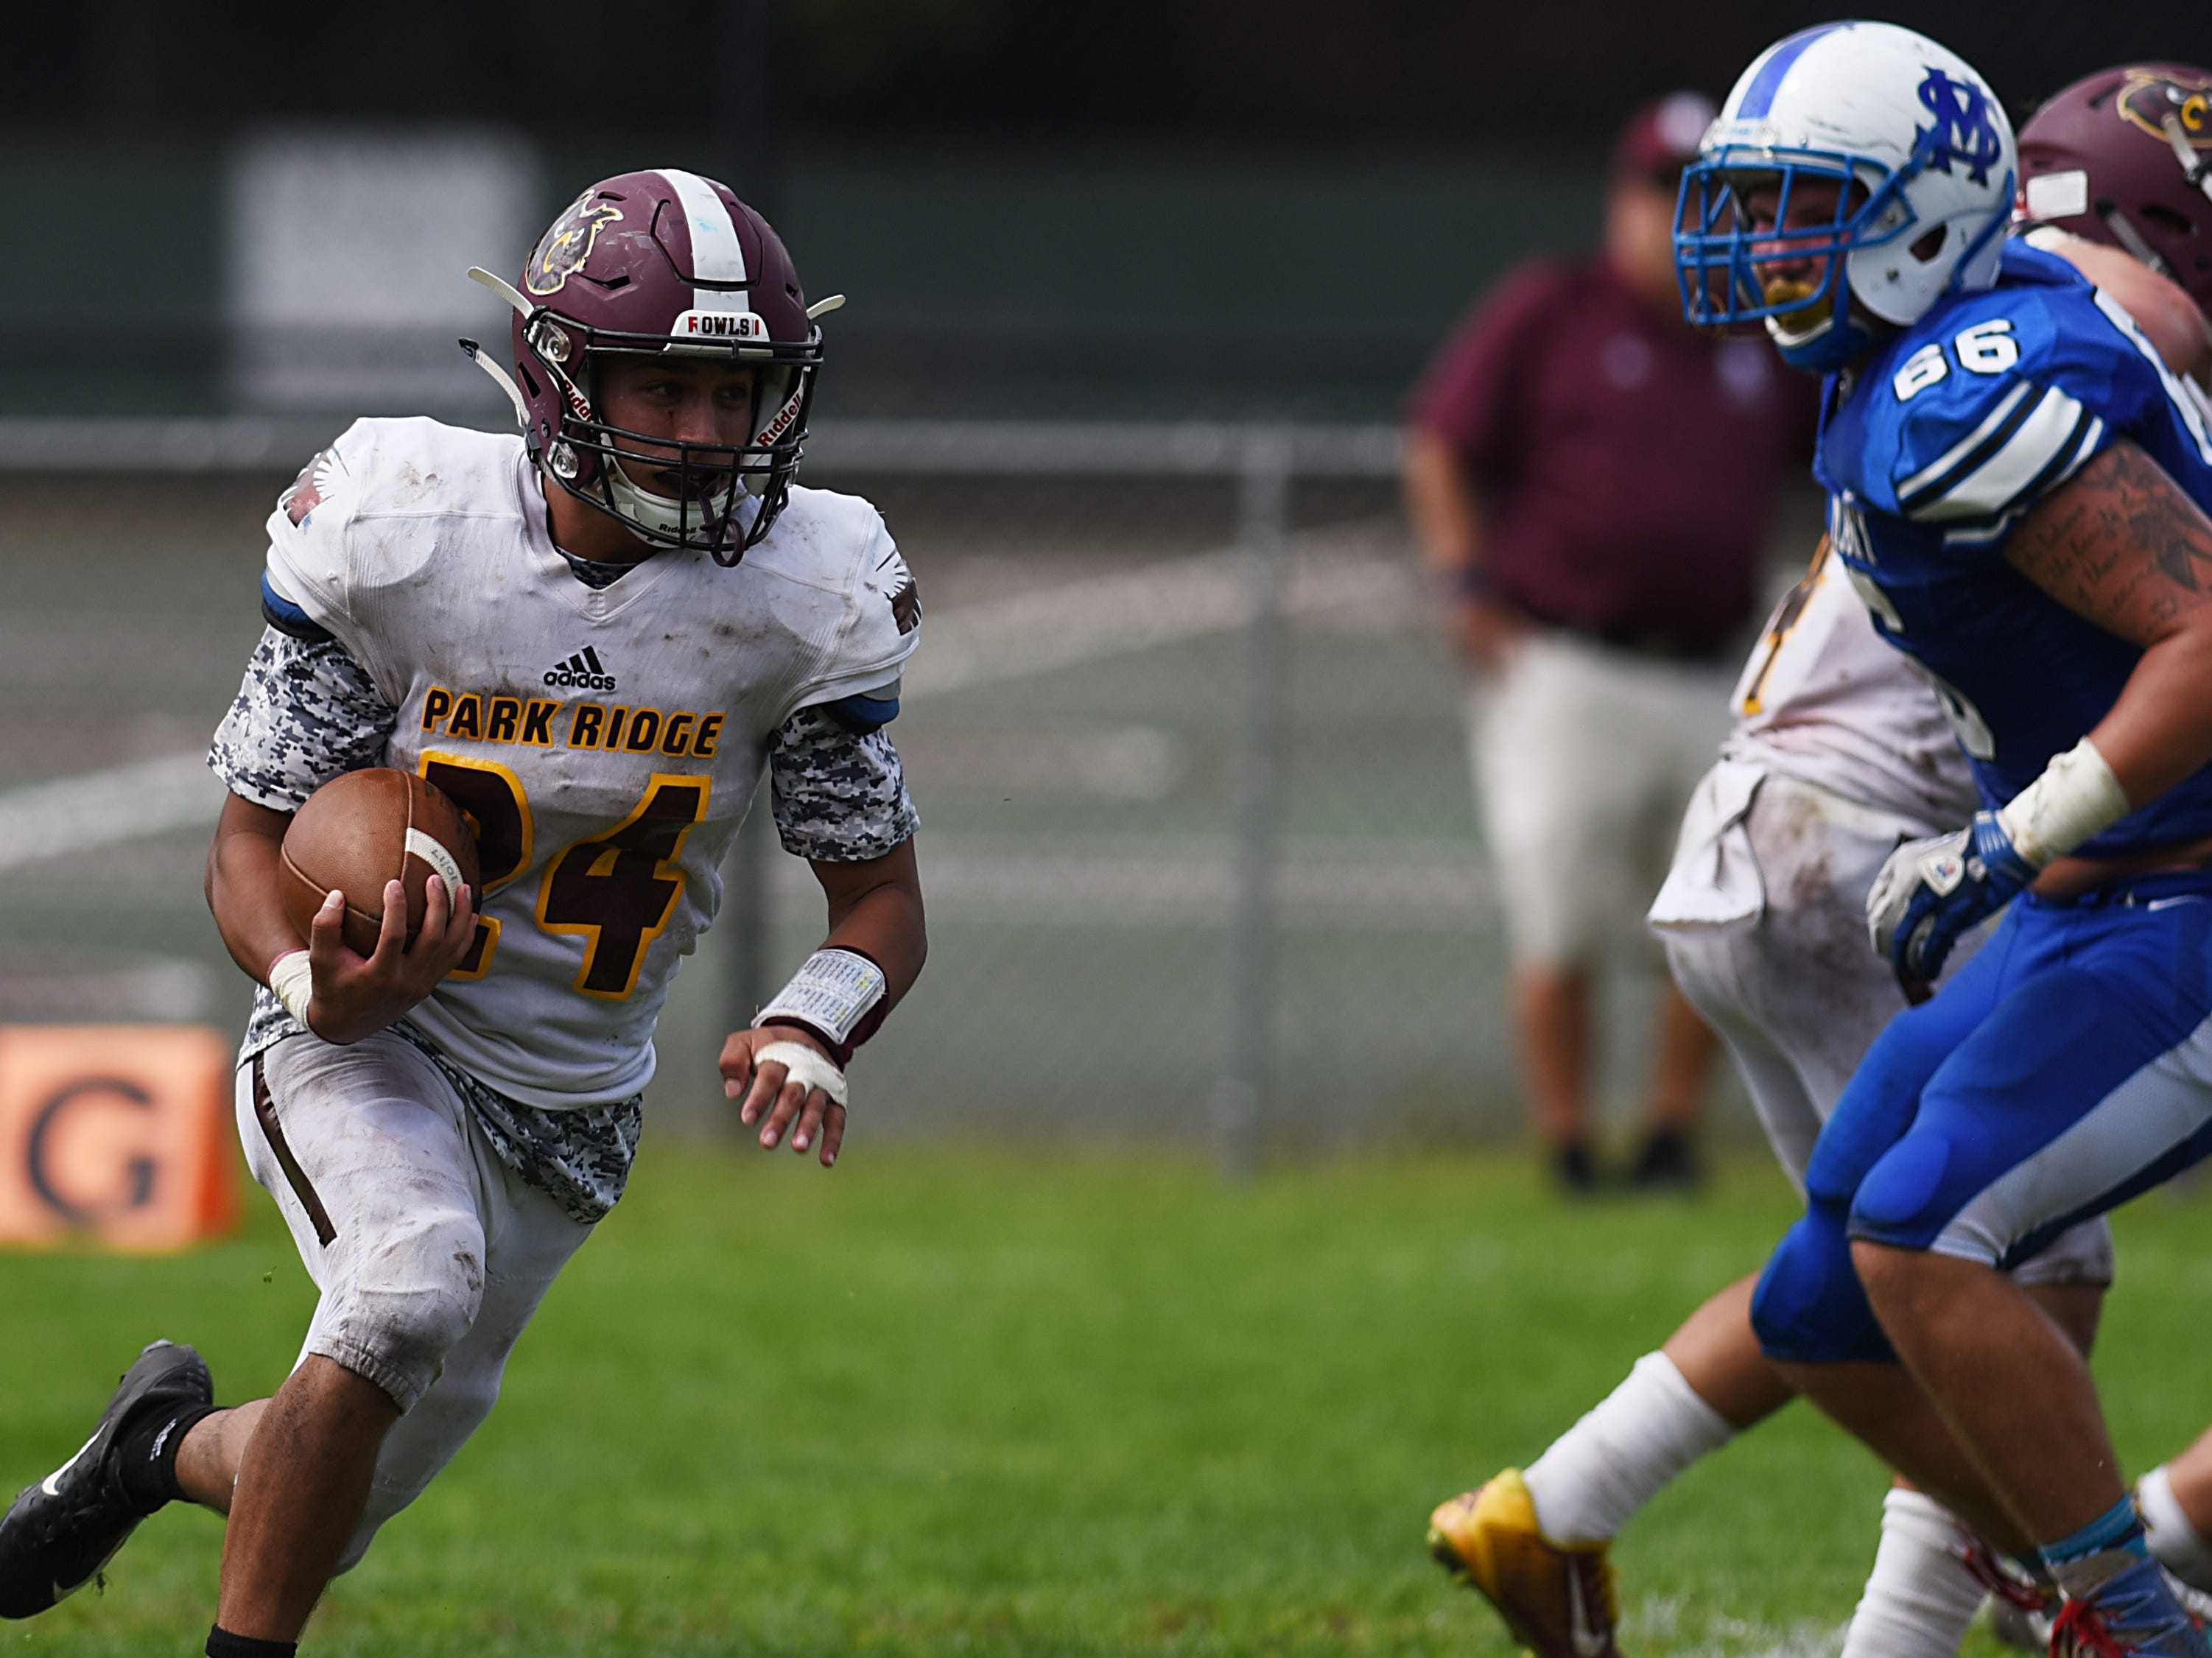 High school football game between Park Ridge and St. Mary at Tamblyn Field in Rutherford on Saturday September 15, 2018. (From left) PR#24 Marcus Raman and SM#66 Christopher Buchta.